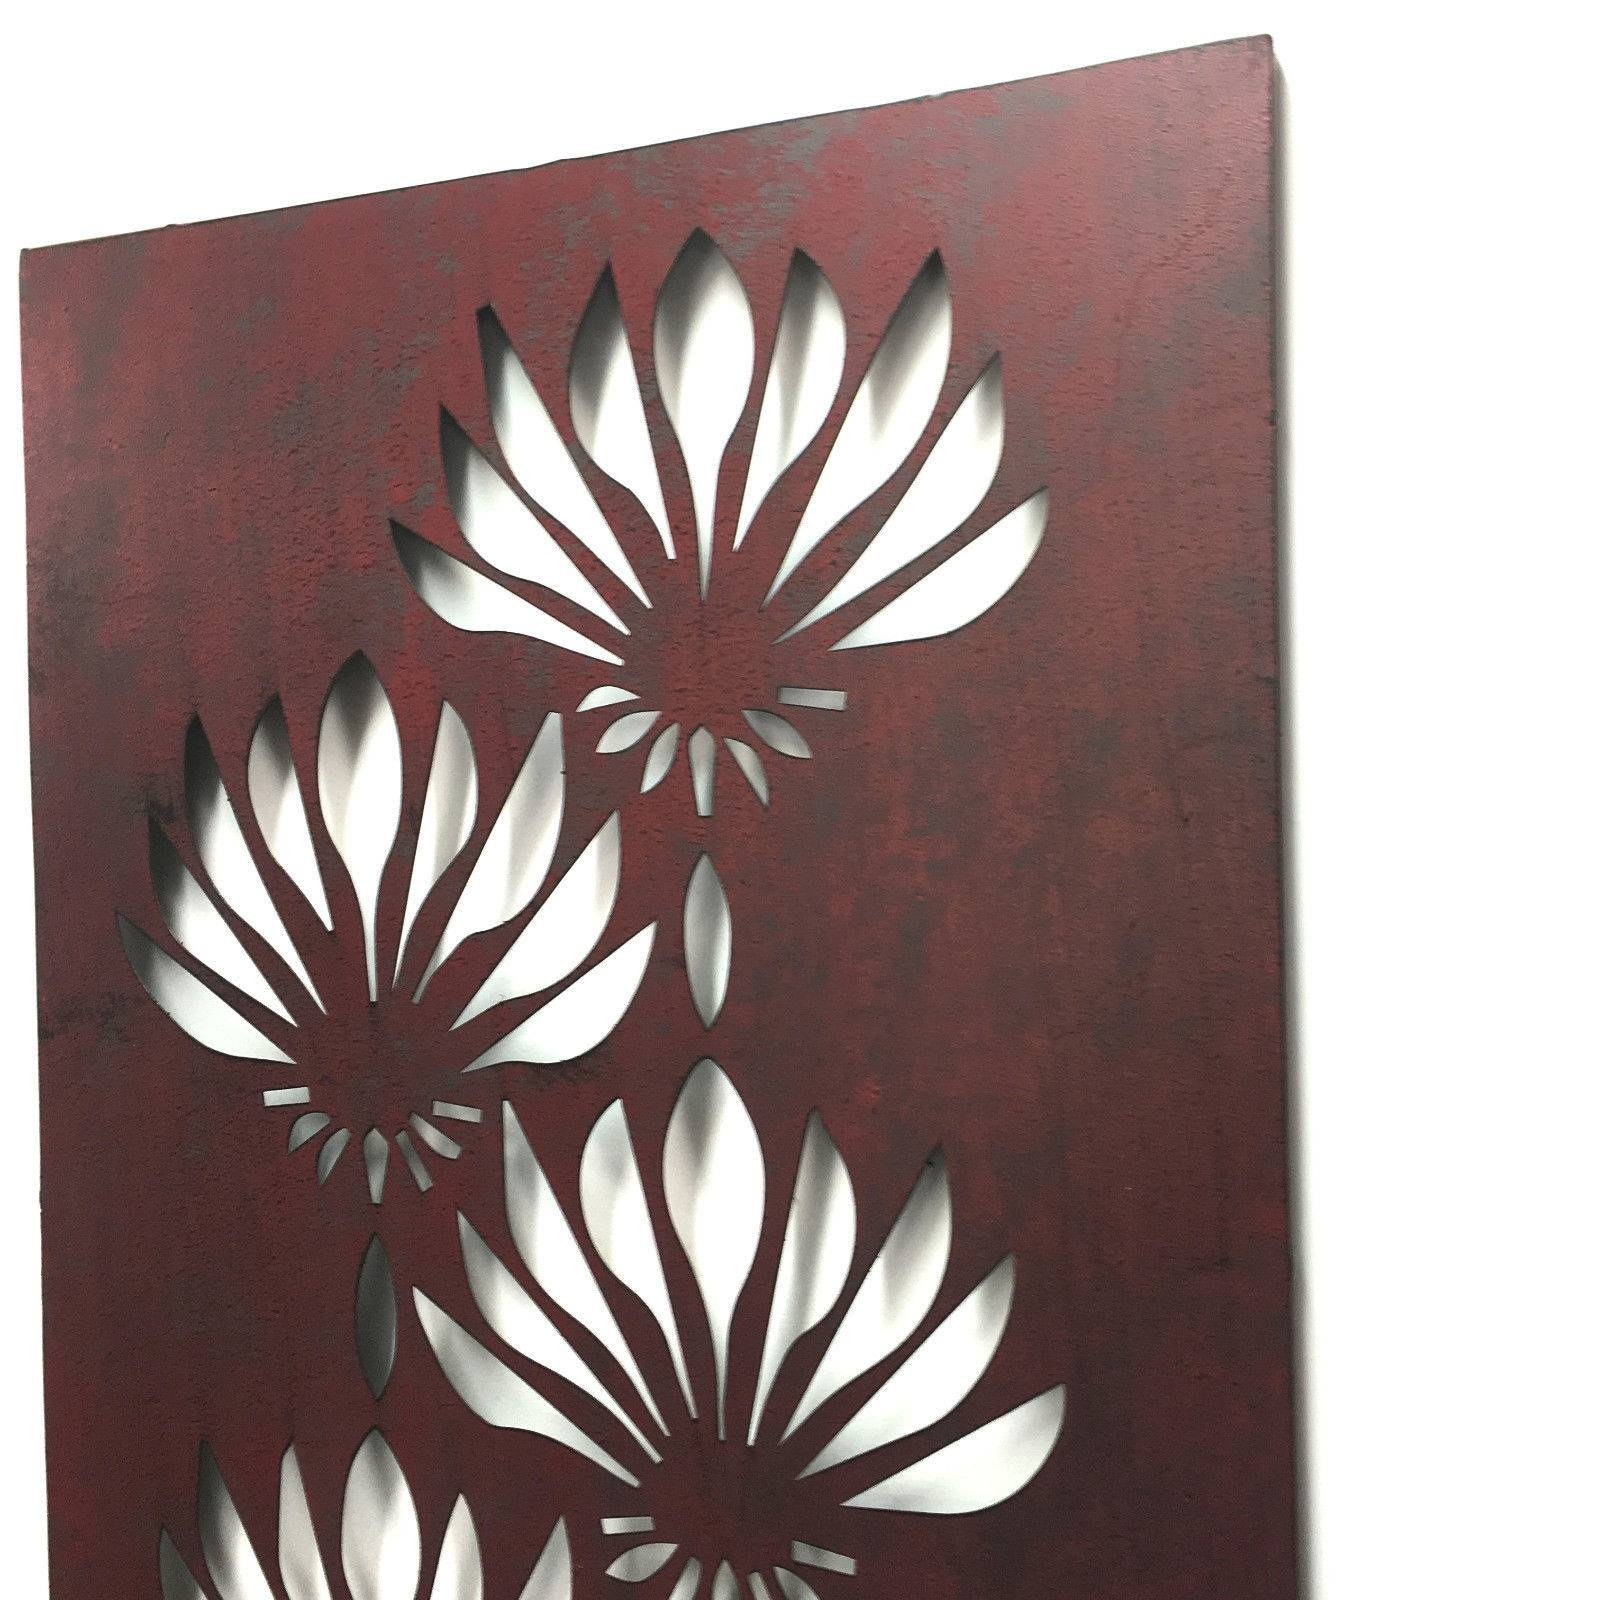 Lotus Flower Lasercut Metal Wall Art 80Cm Inside Latest Laser Cut Metal Wall Art (View 11 of 20)